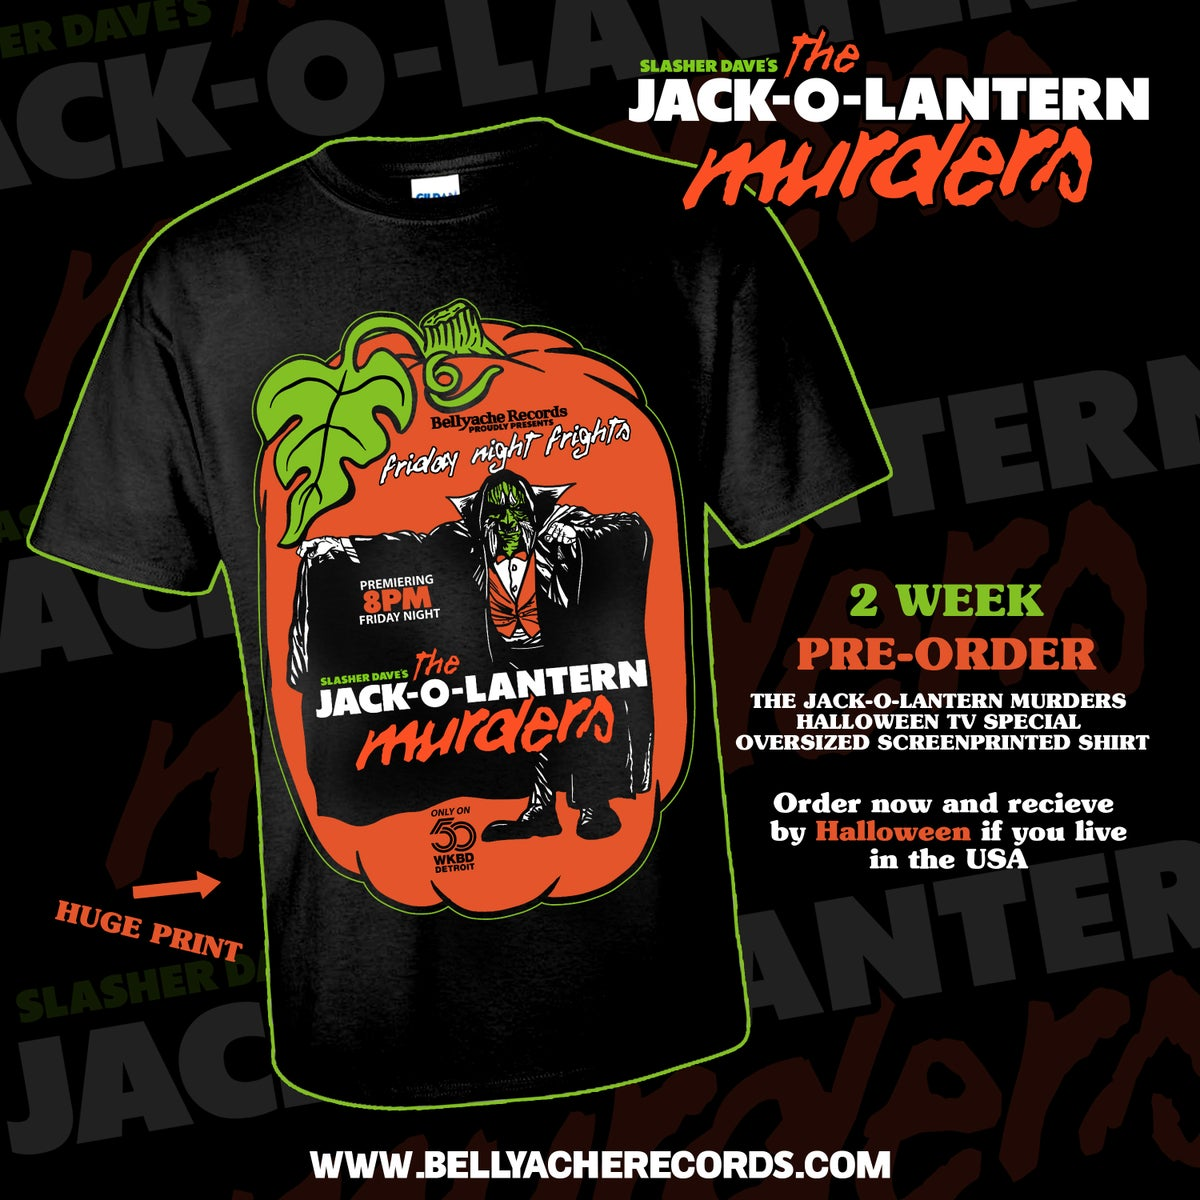 Image of Slasher Dave's The Jack-O-Lantern Murders HALLOWEEN TV SPECIAL AD Shirt ***PRE-ORDER ONLY!***